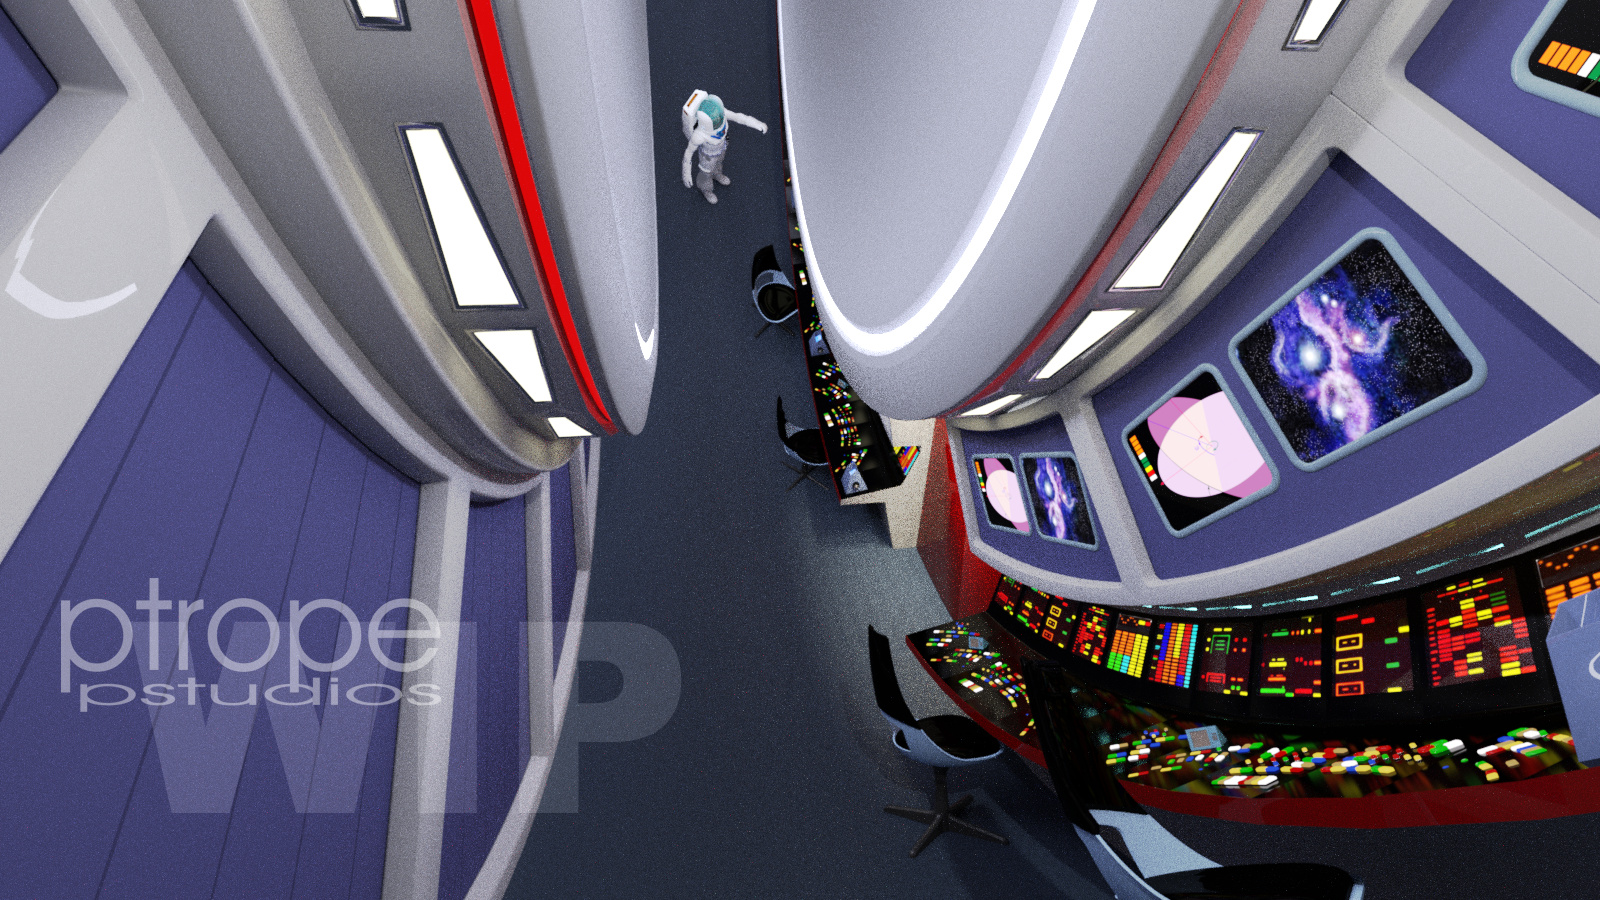 U.S.S. Inception by Ptrope